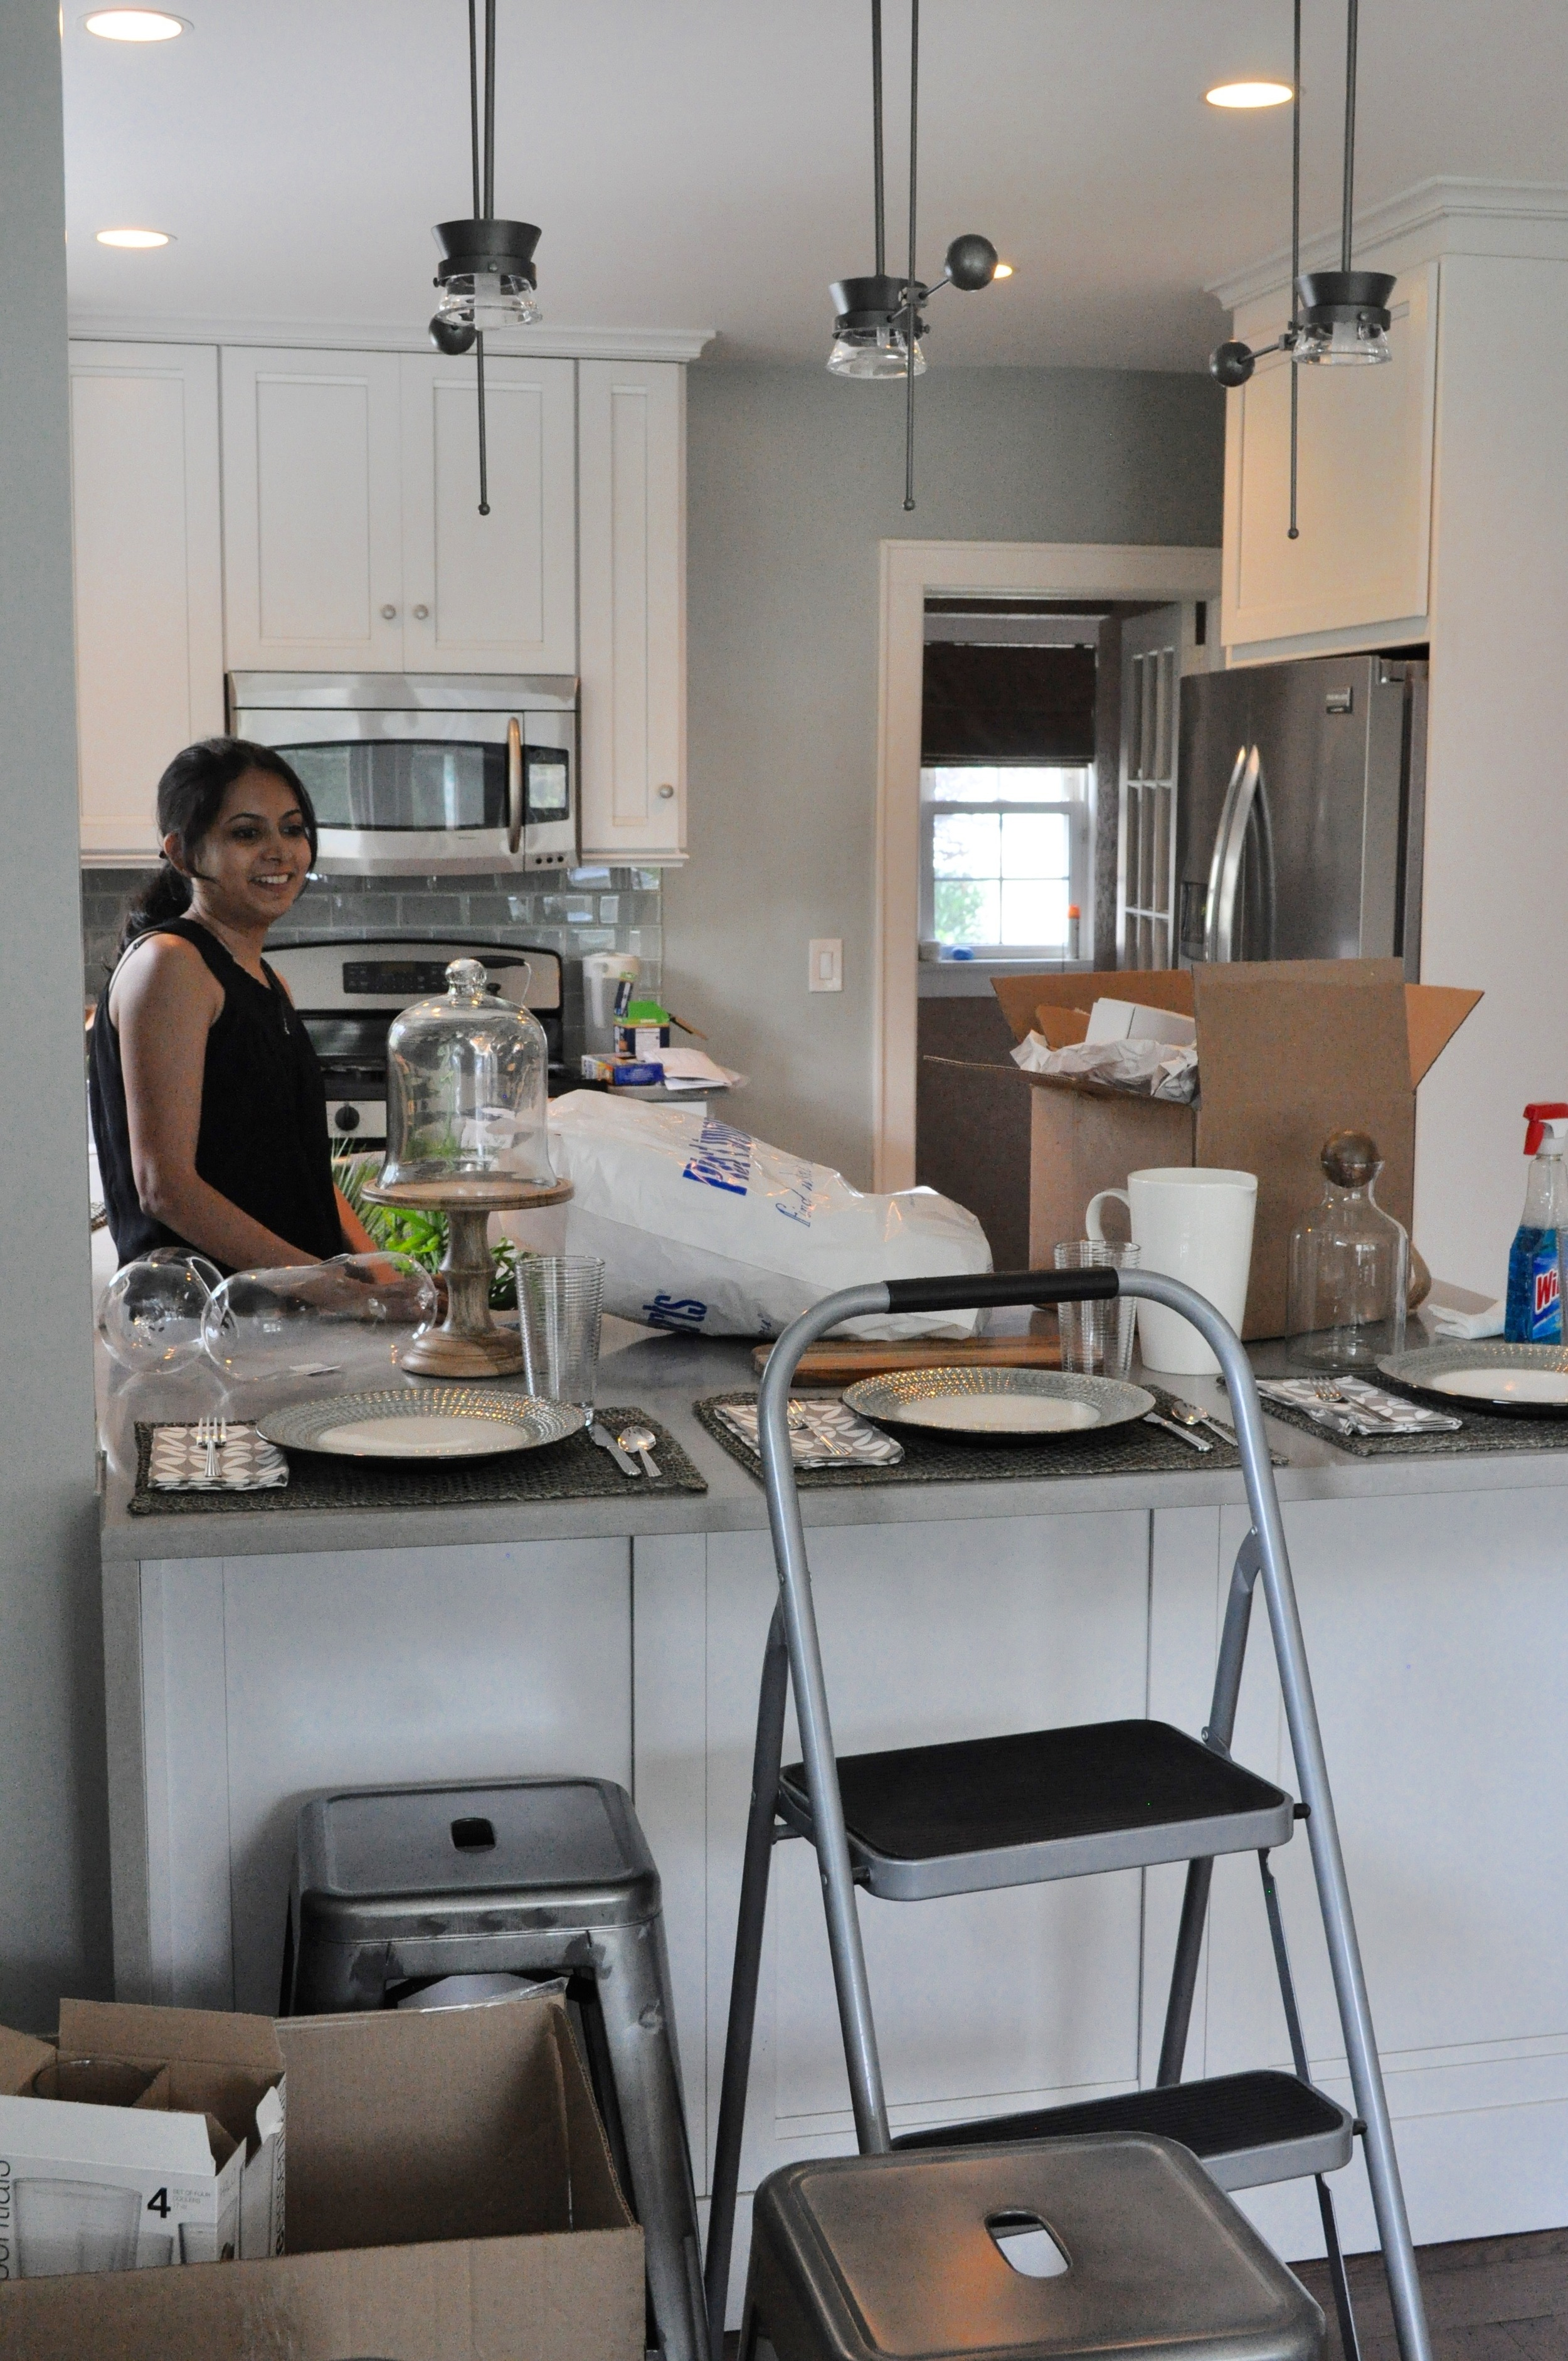 #321_Kitchen_StagingDay_Deepti - 1 (1).jpg